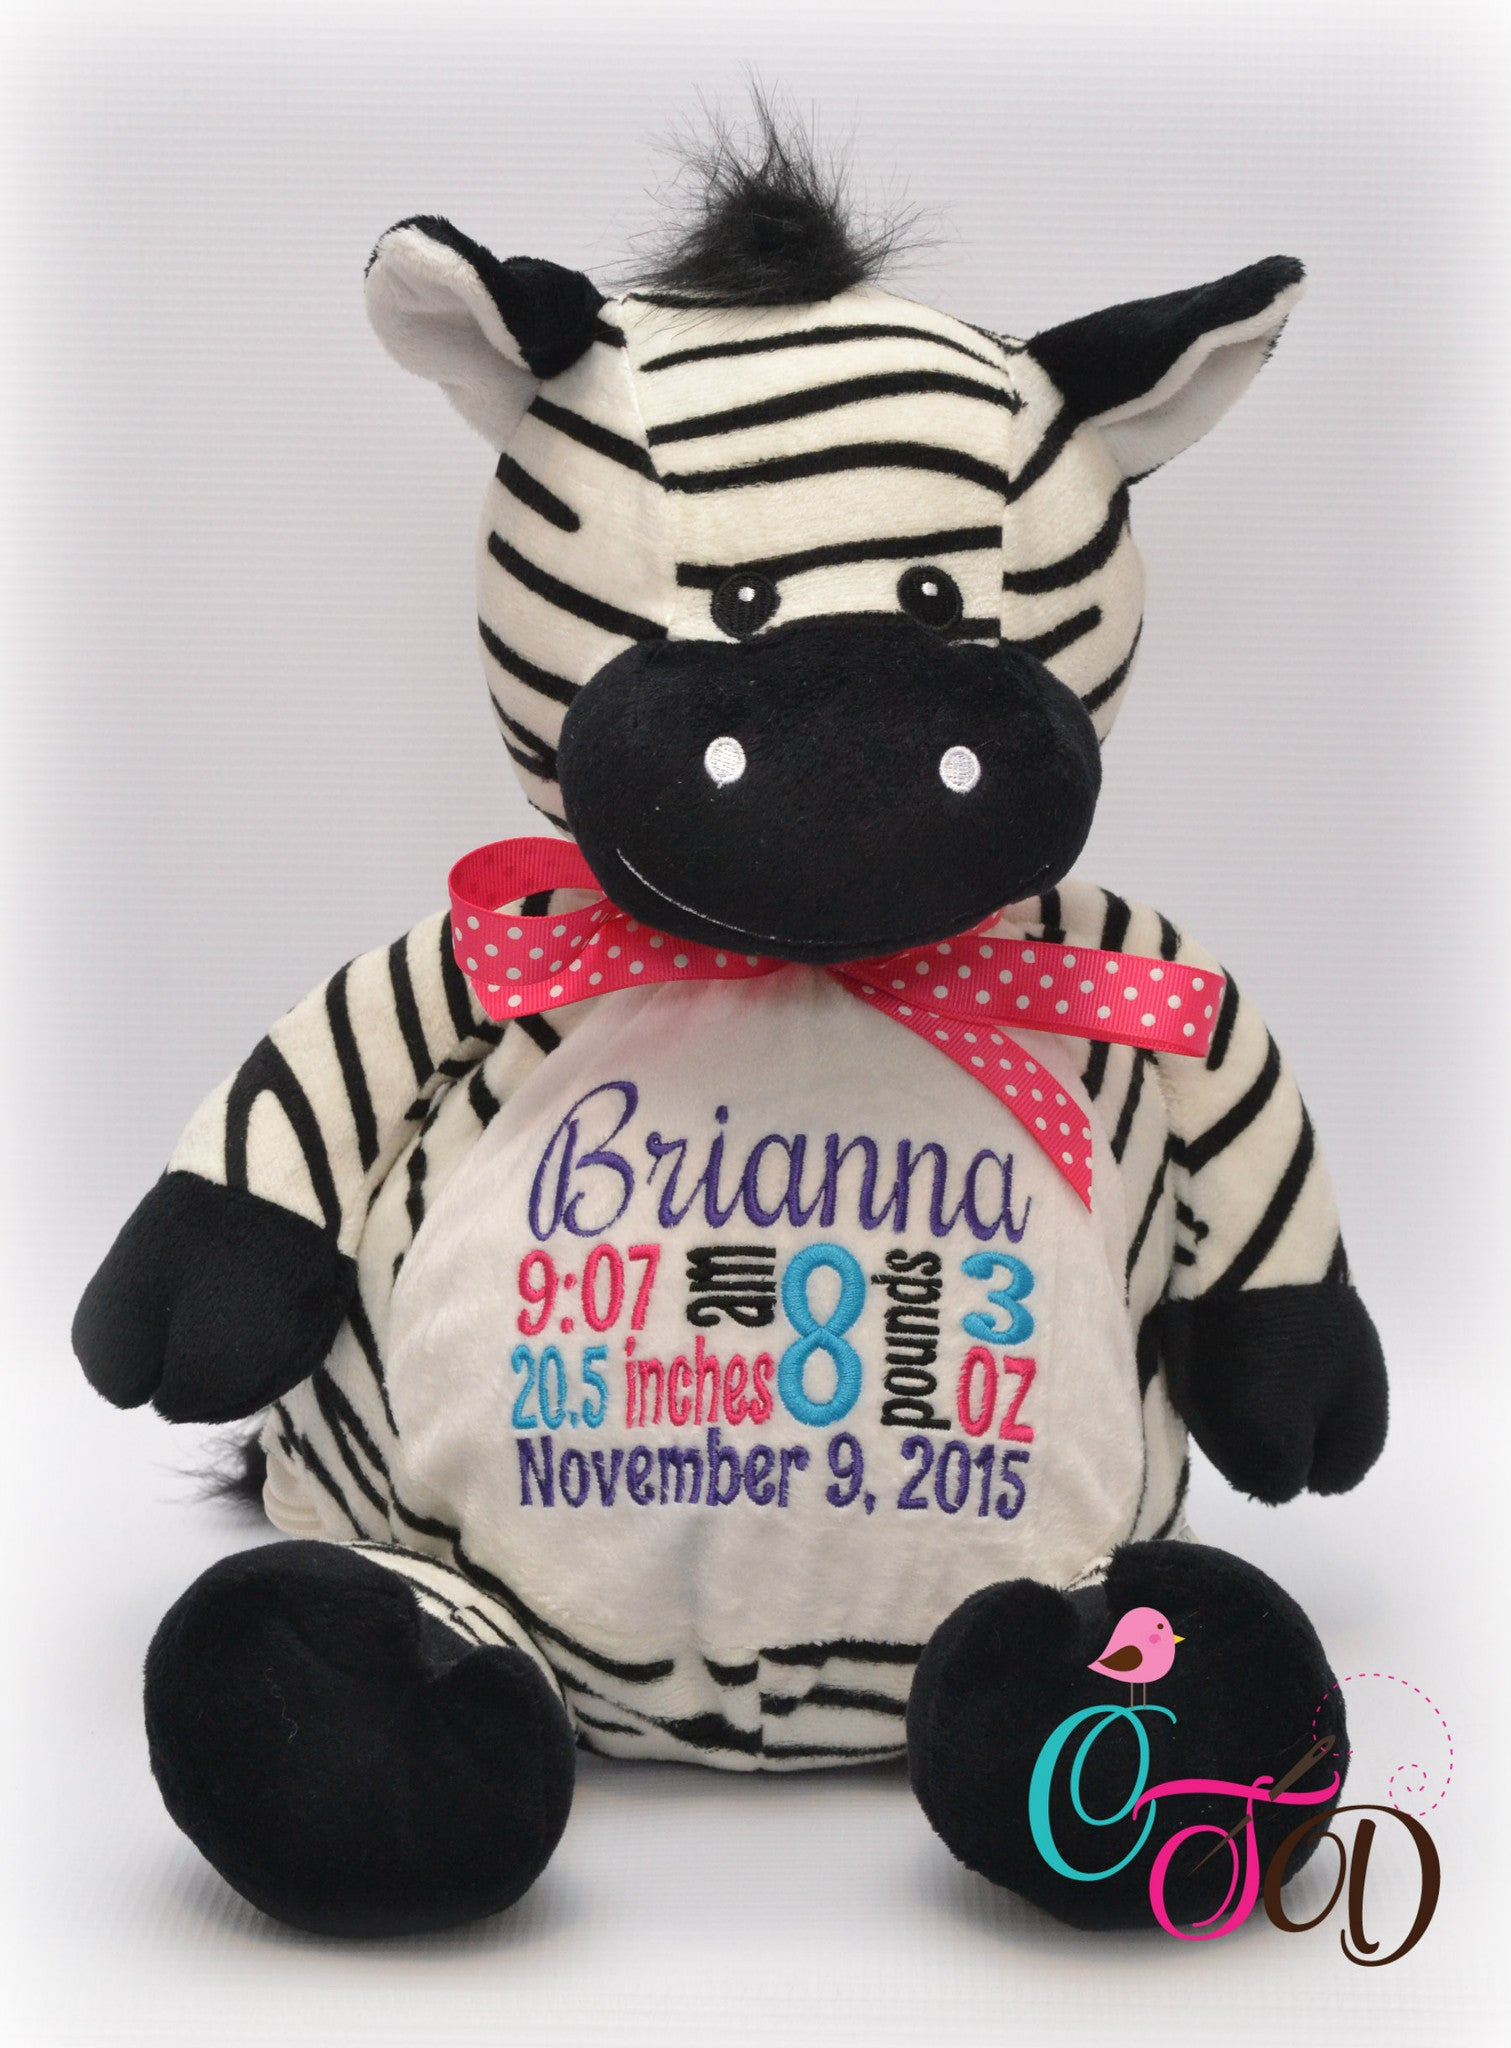 Zebra - Christine Taylor Designs